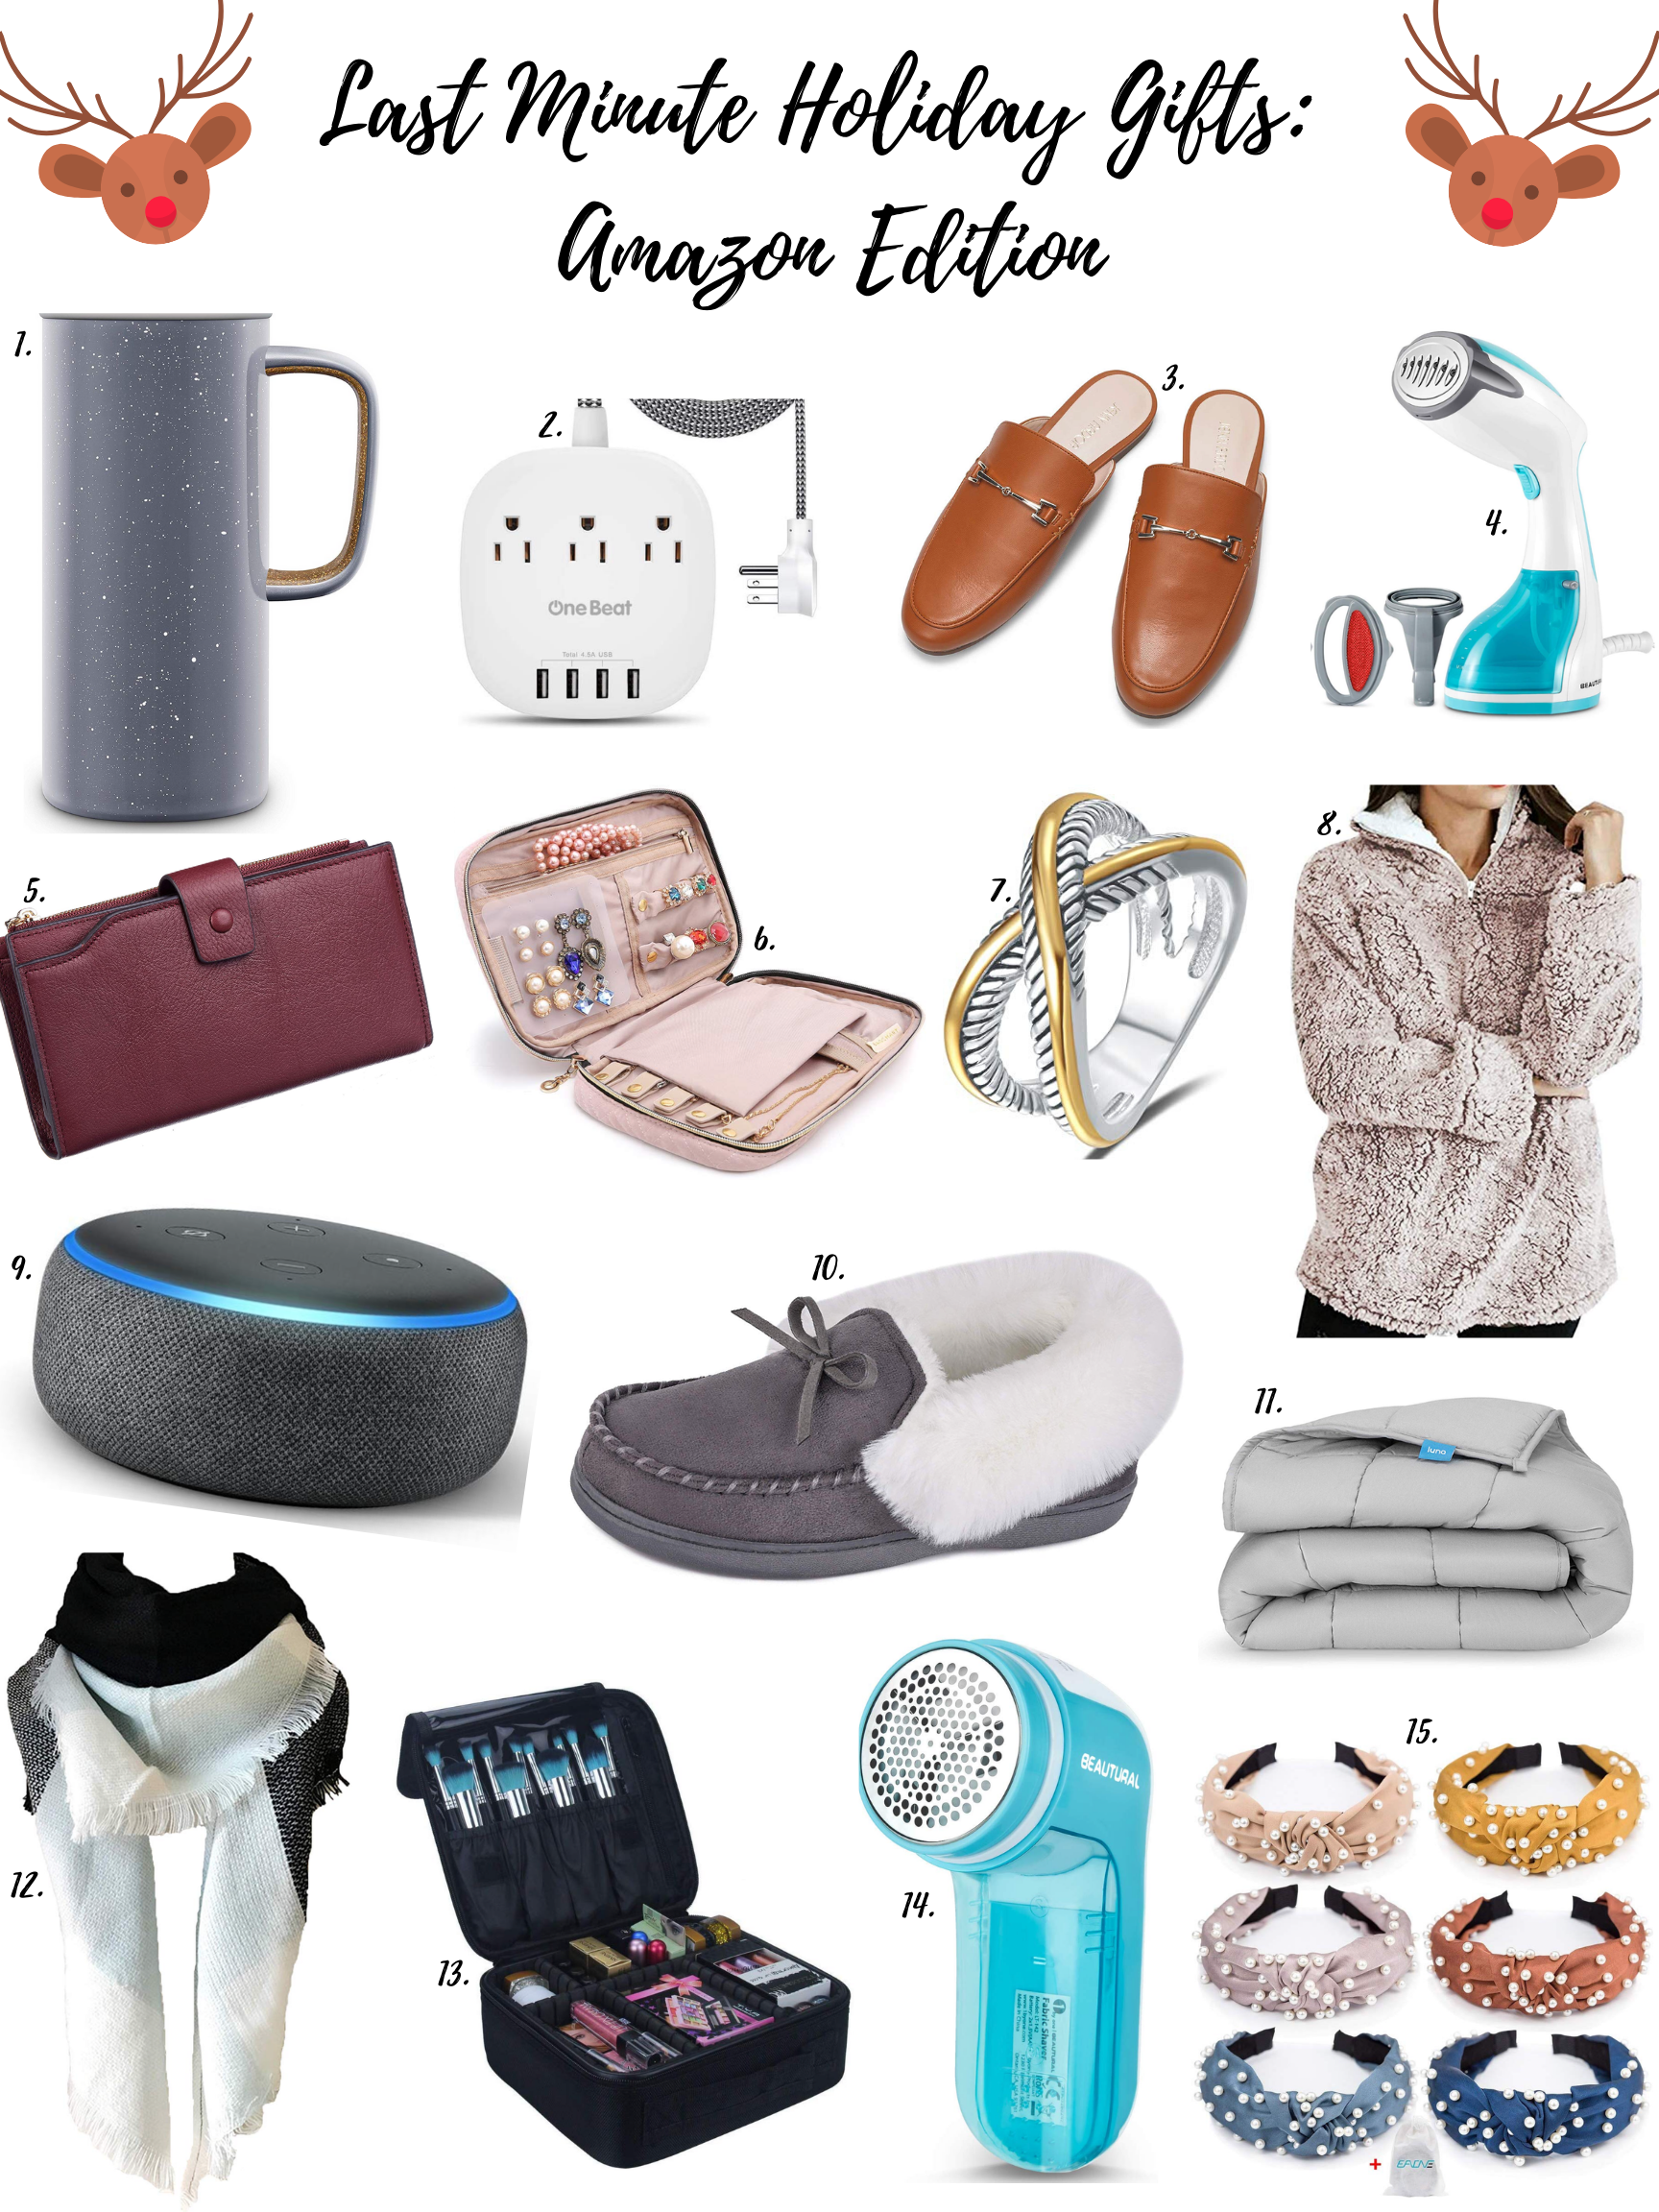 LAST MINUTE CHRISTMAS GIFTS: AMAZON EDITION